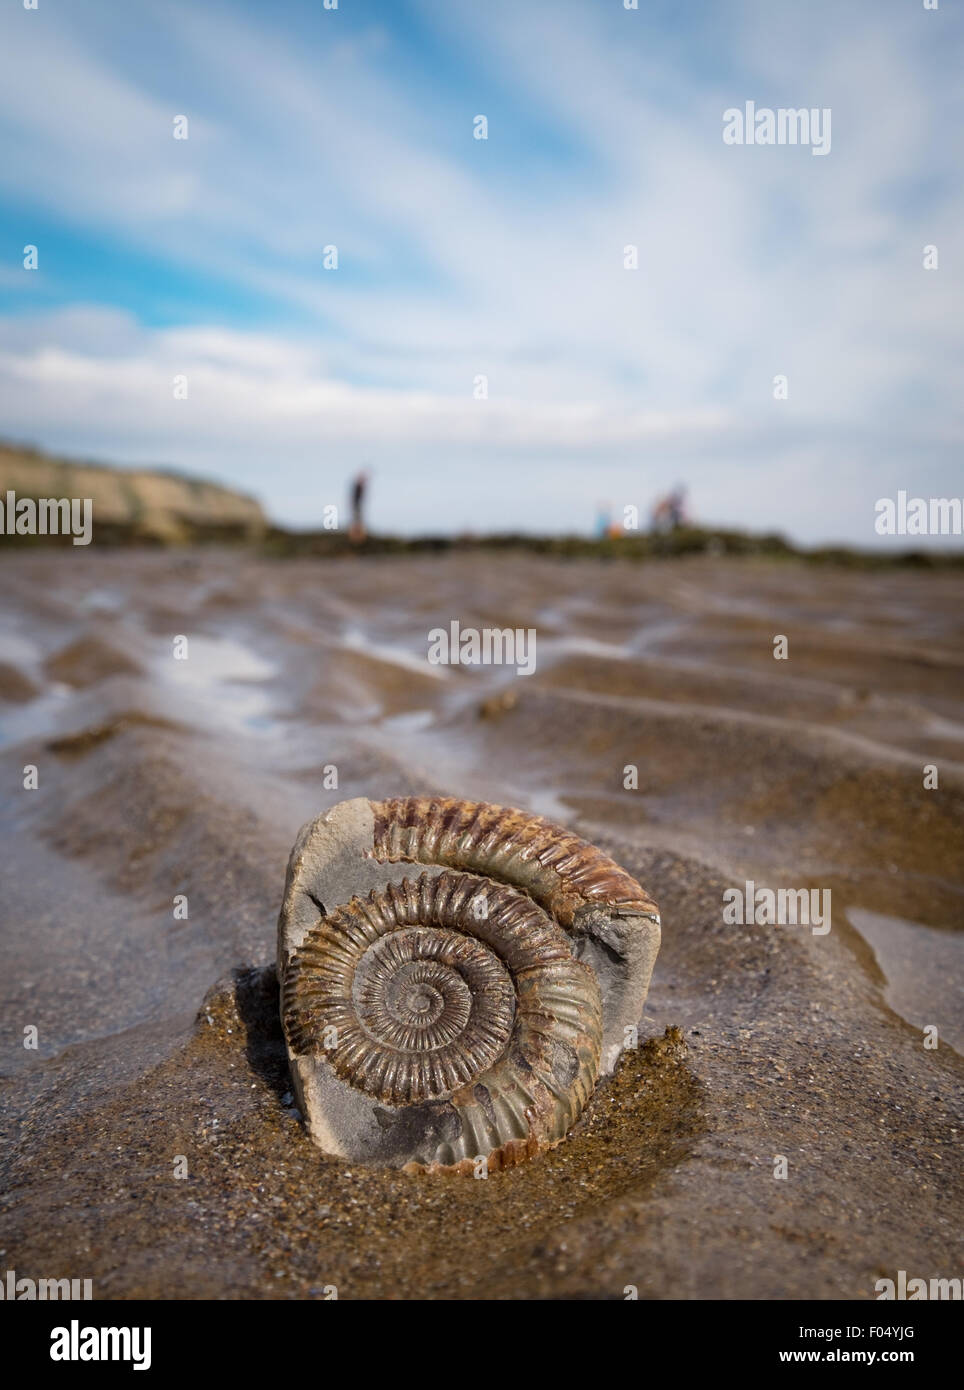 An ammonite fossil on the beach at Robin Hood's Bay, part of the Yorkshire Jurassic Coast, UK - Stock Image